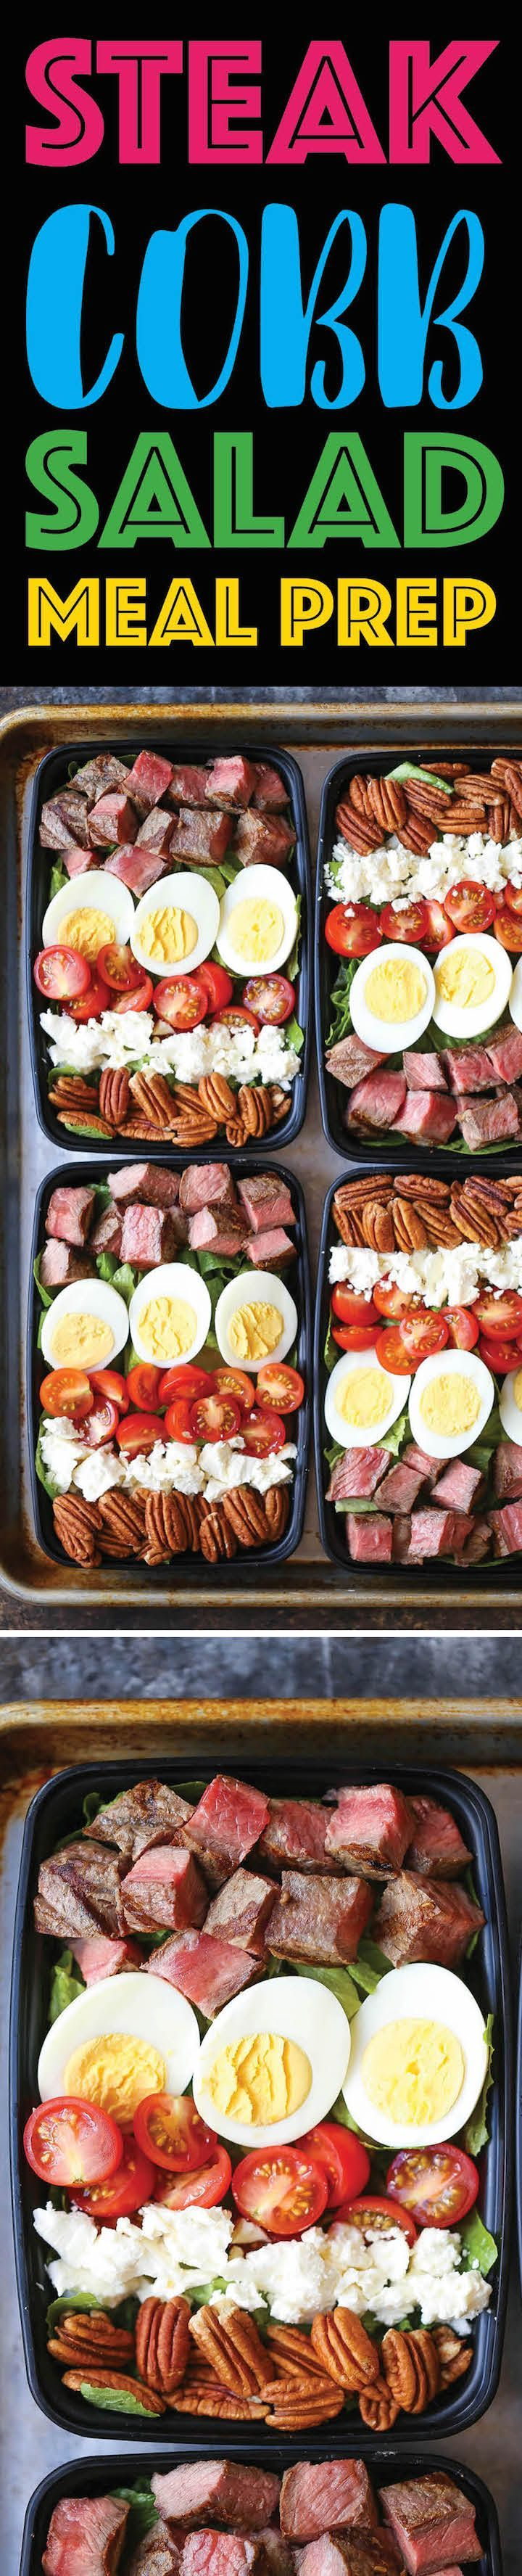 Steak Cobb Salad Meal Prep -- Prep for the week ahead! Loaded with protein, nutrients and greens! Plus, this is low carb, easy peasy and budget-friendly.